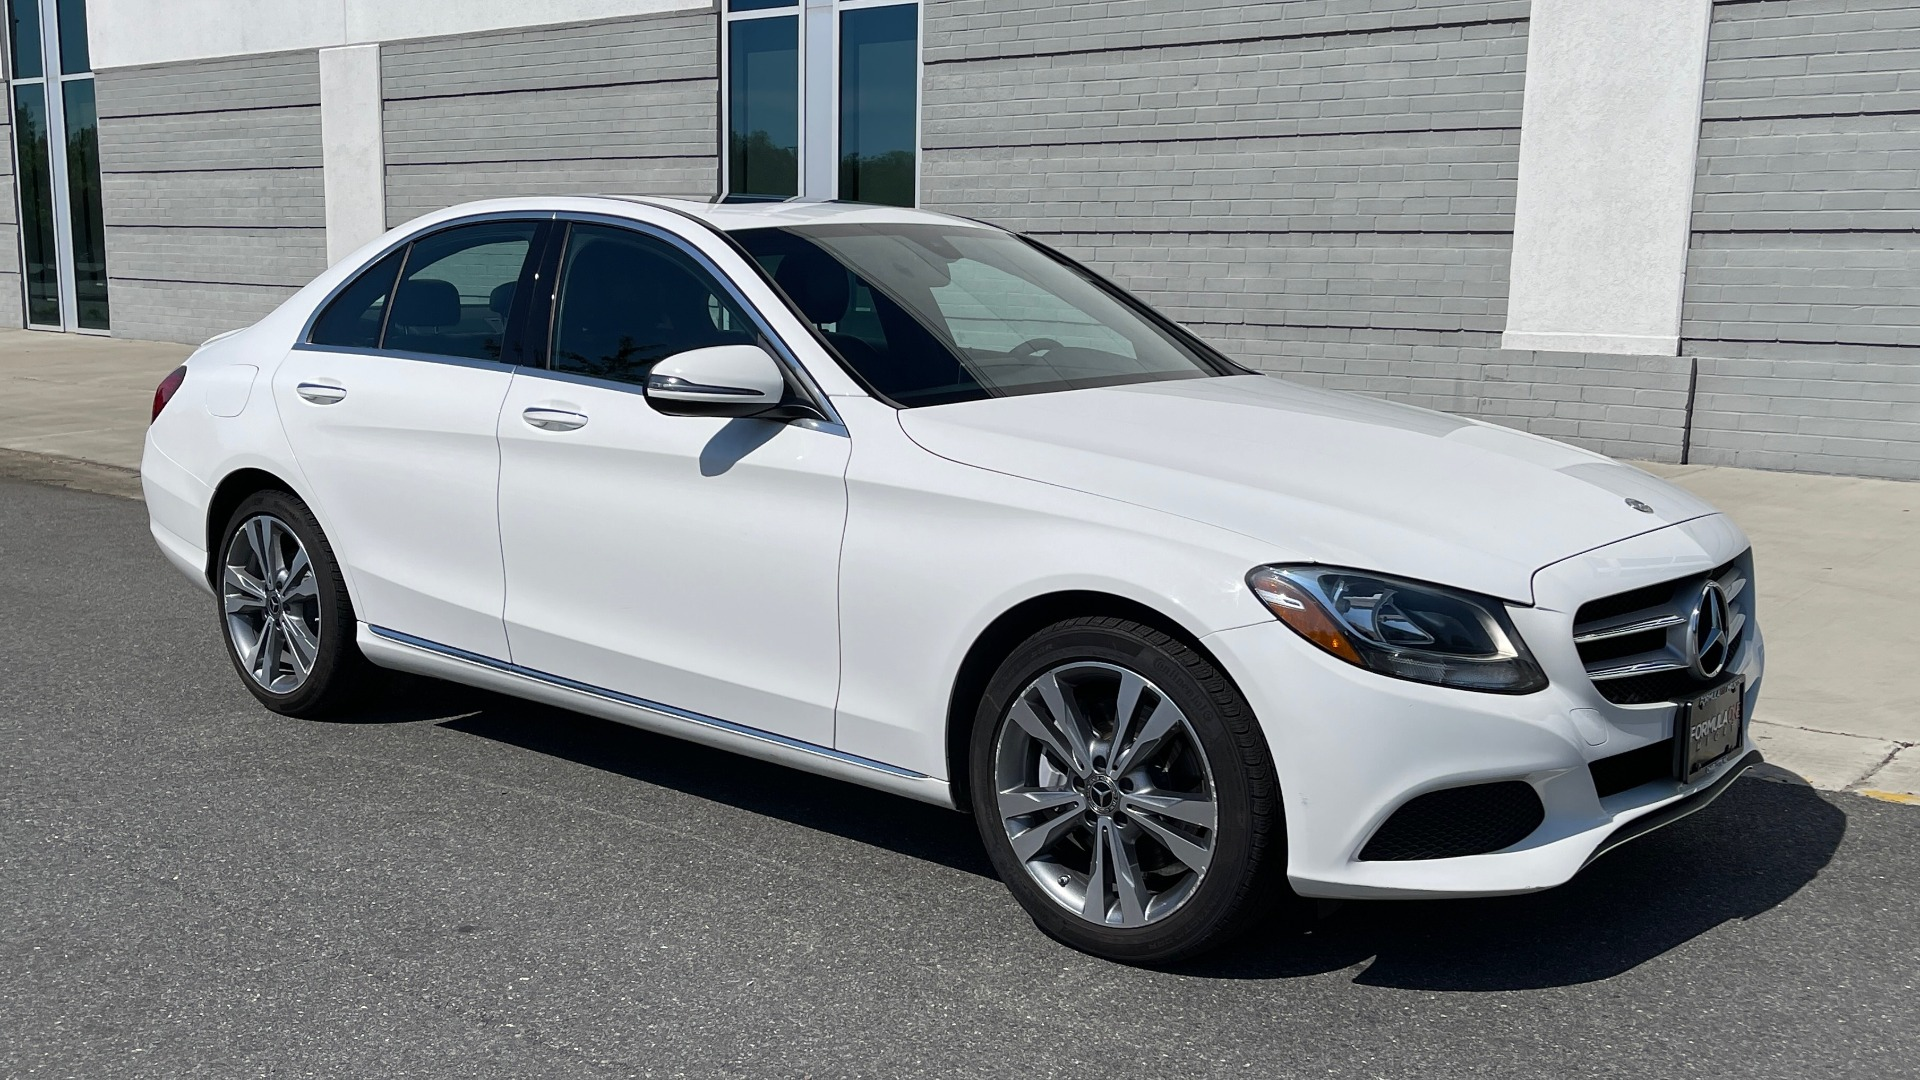 Used 2018 Mercedes-Benz C-CLASS C 300 PREMIUM / APPLE CARPLAY / KEYLESS-GO / SUNROOF / REARVIEW for sale $32,995 at Formula Imports in Charlotte NC 28227 6